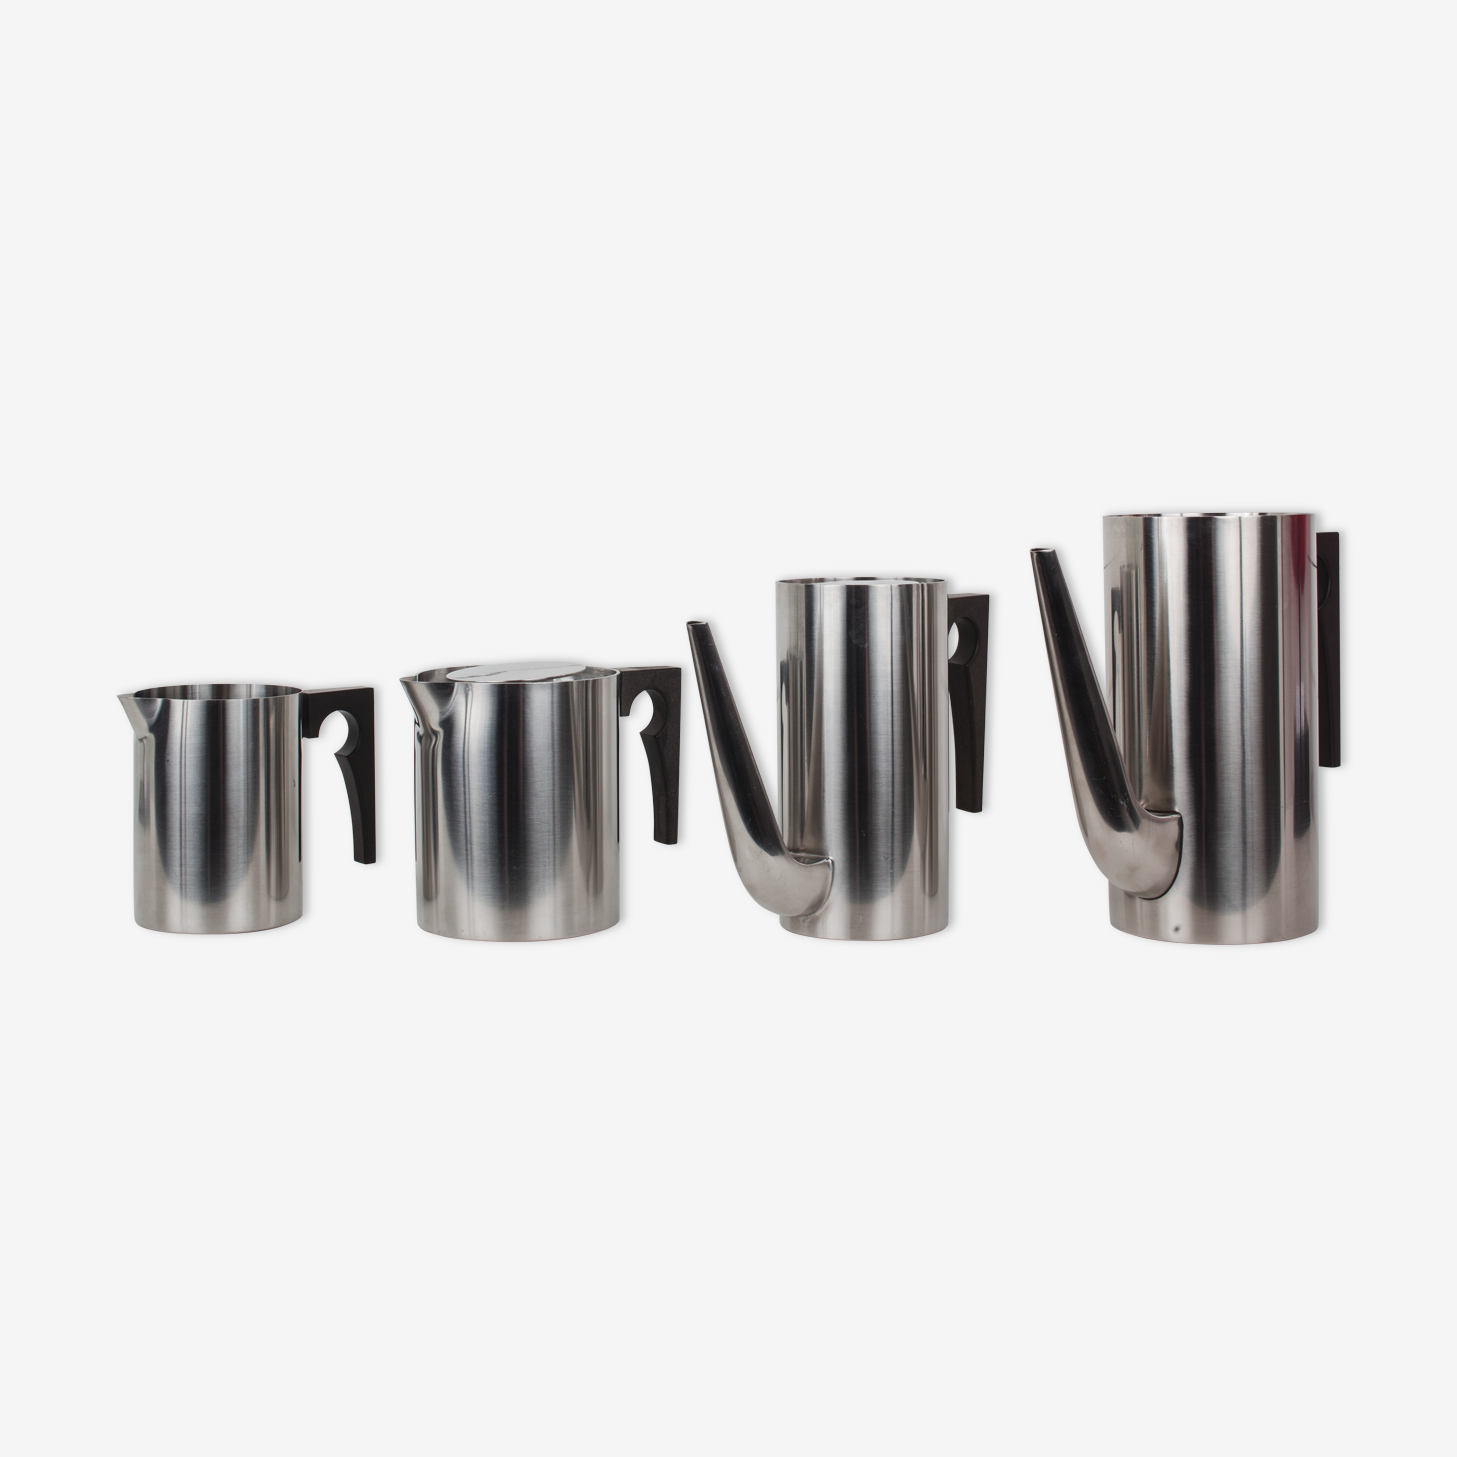 Service by Arne Jacobsen for Stelton stainless